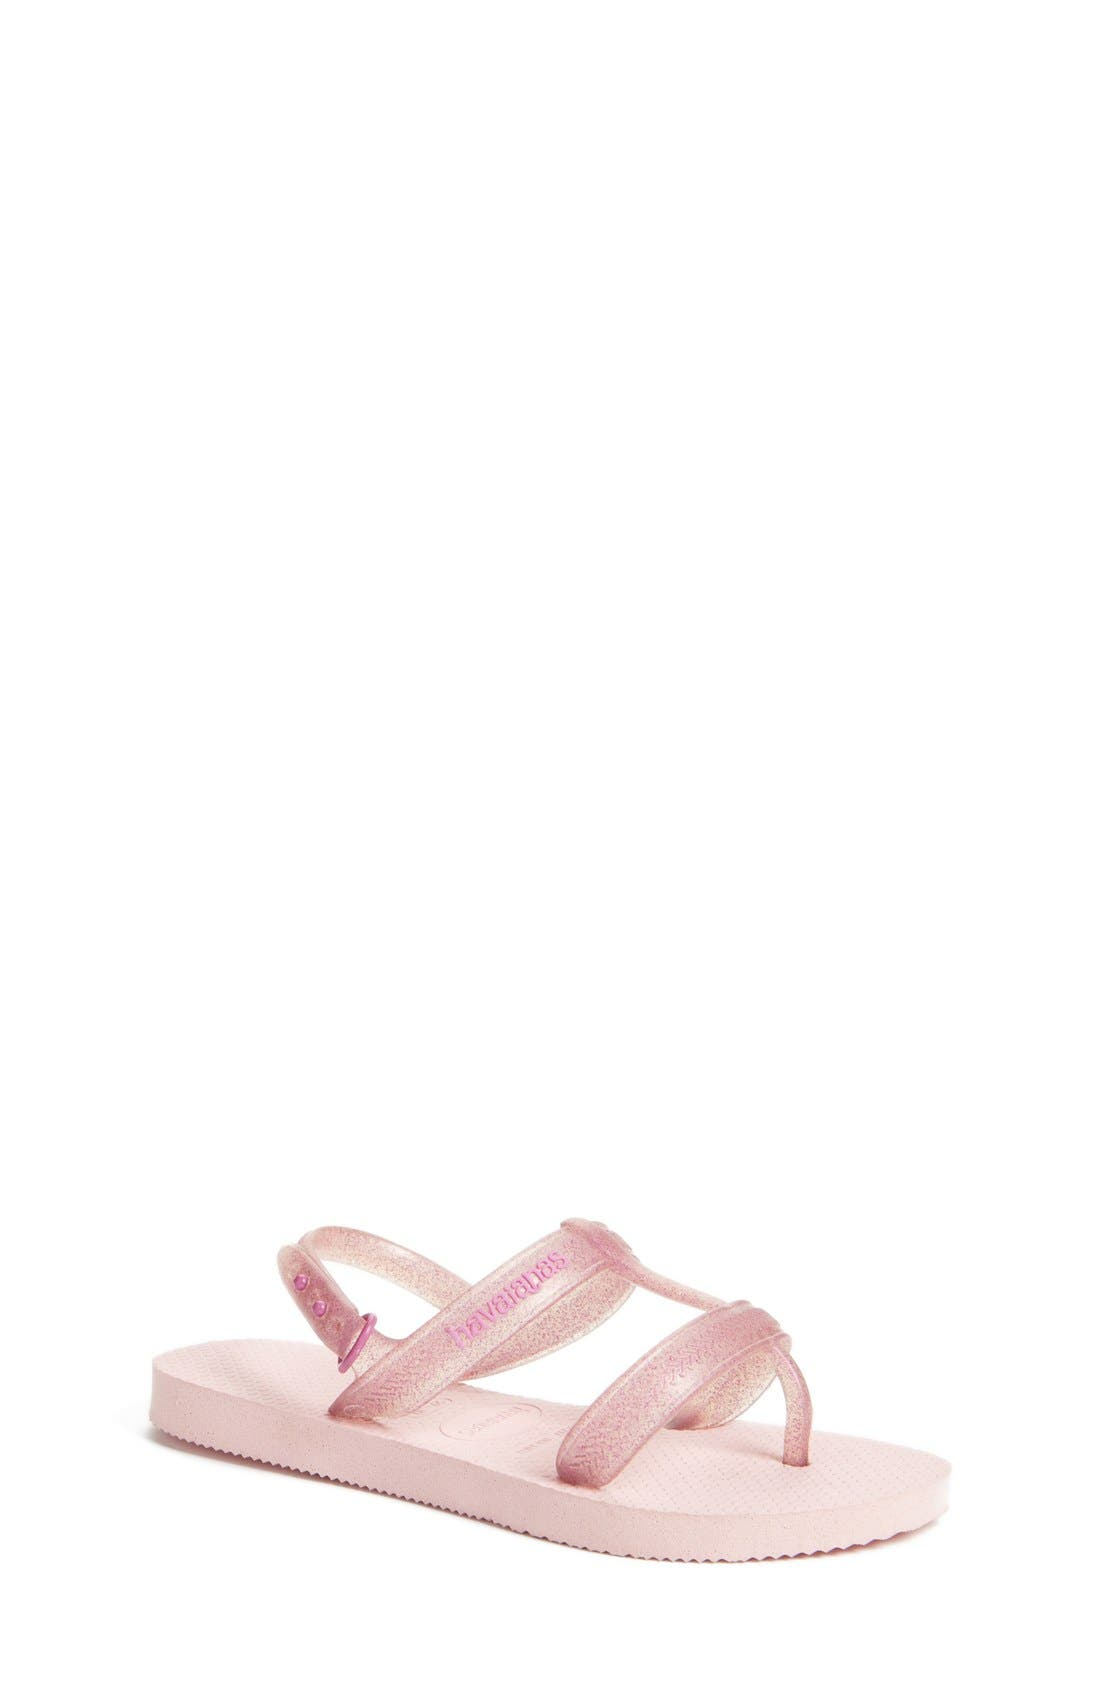 'Joy' Sandal,                             Main thumbnail 1, color,                             Pink